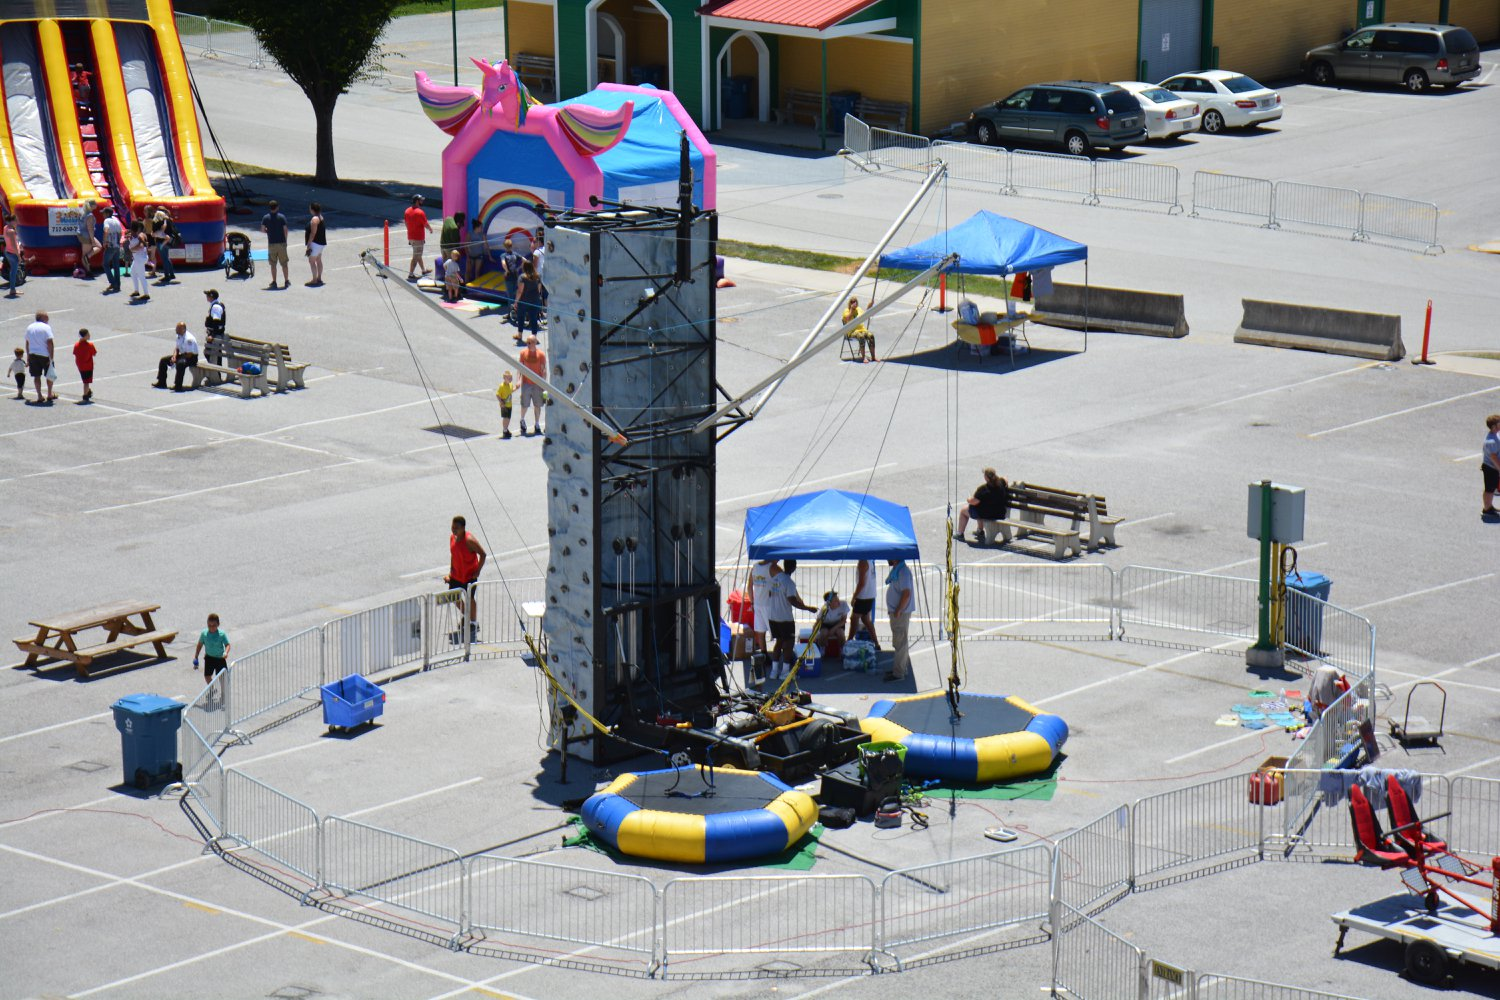 Full View of Rock Wall & Euro Bungy